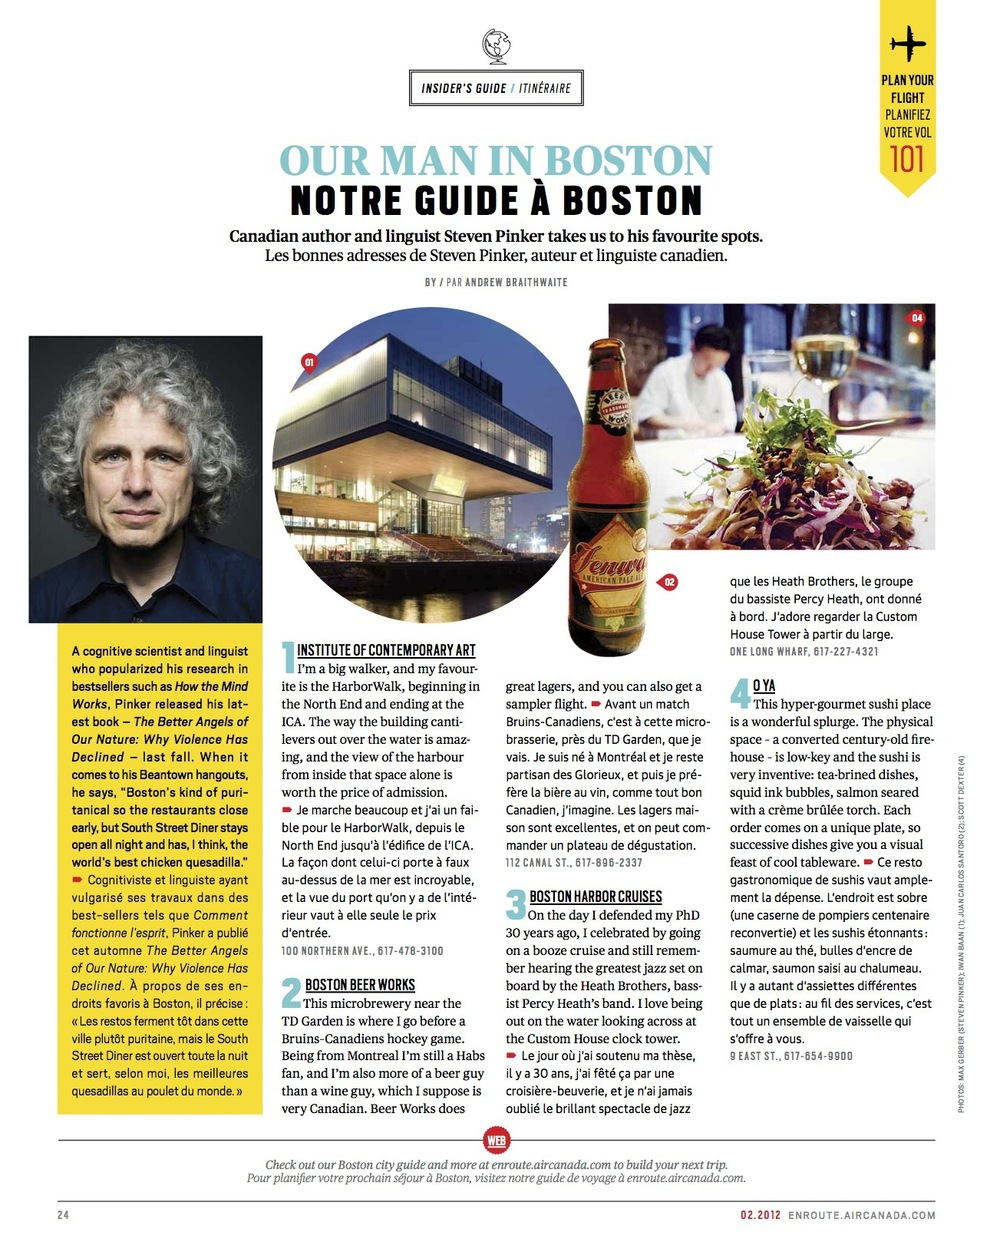 Our Man in Boston: Steven Pinker  //  enRoute  //  2012  //  web